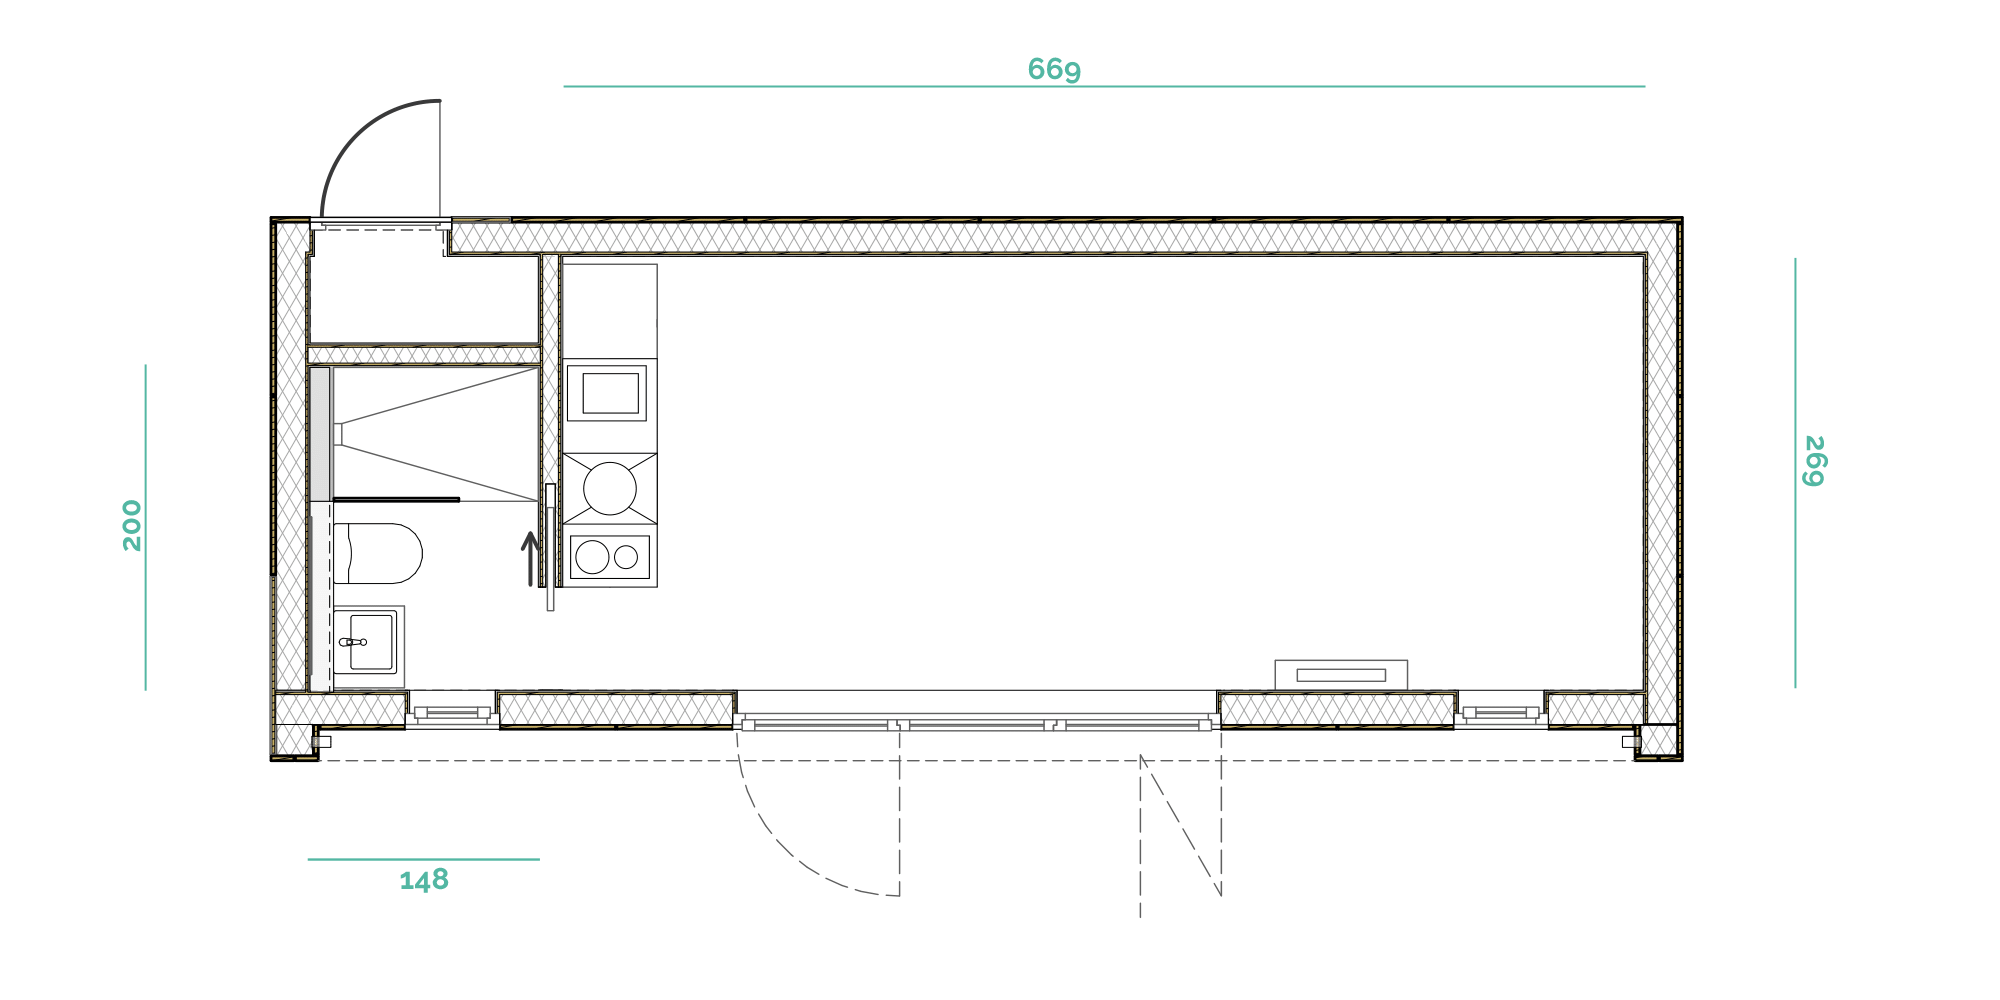 Tiny House BLOXS floor plan with 31 square metres